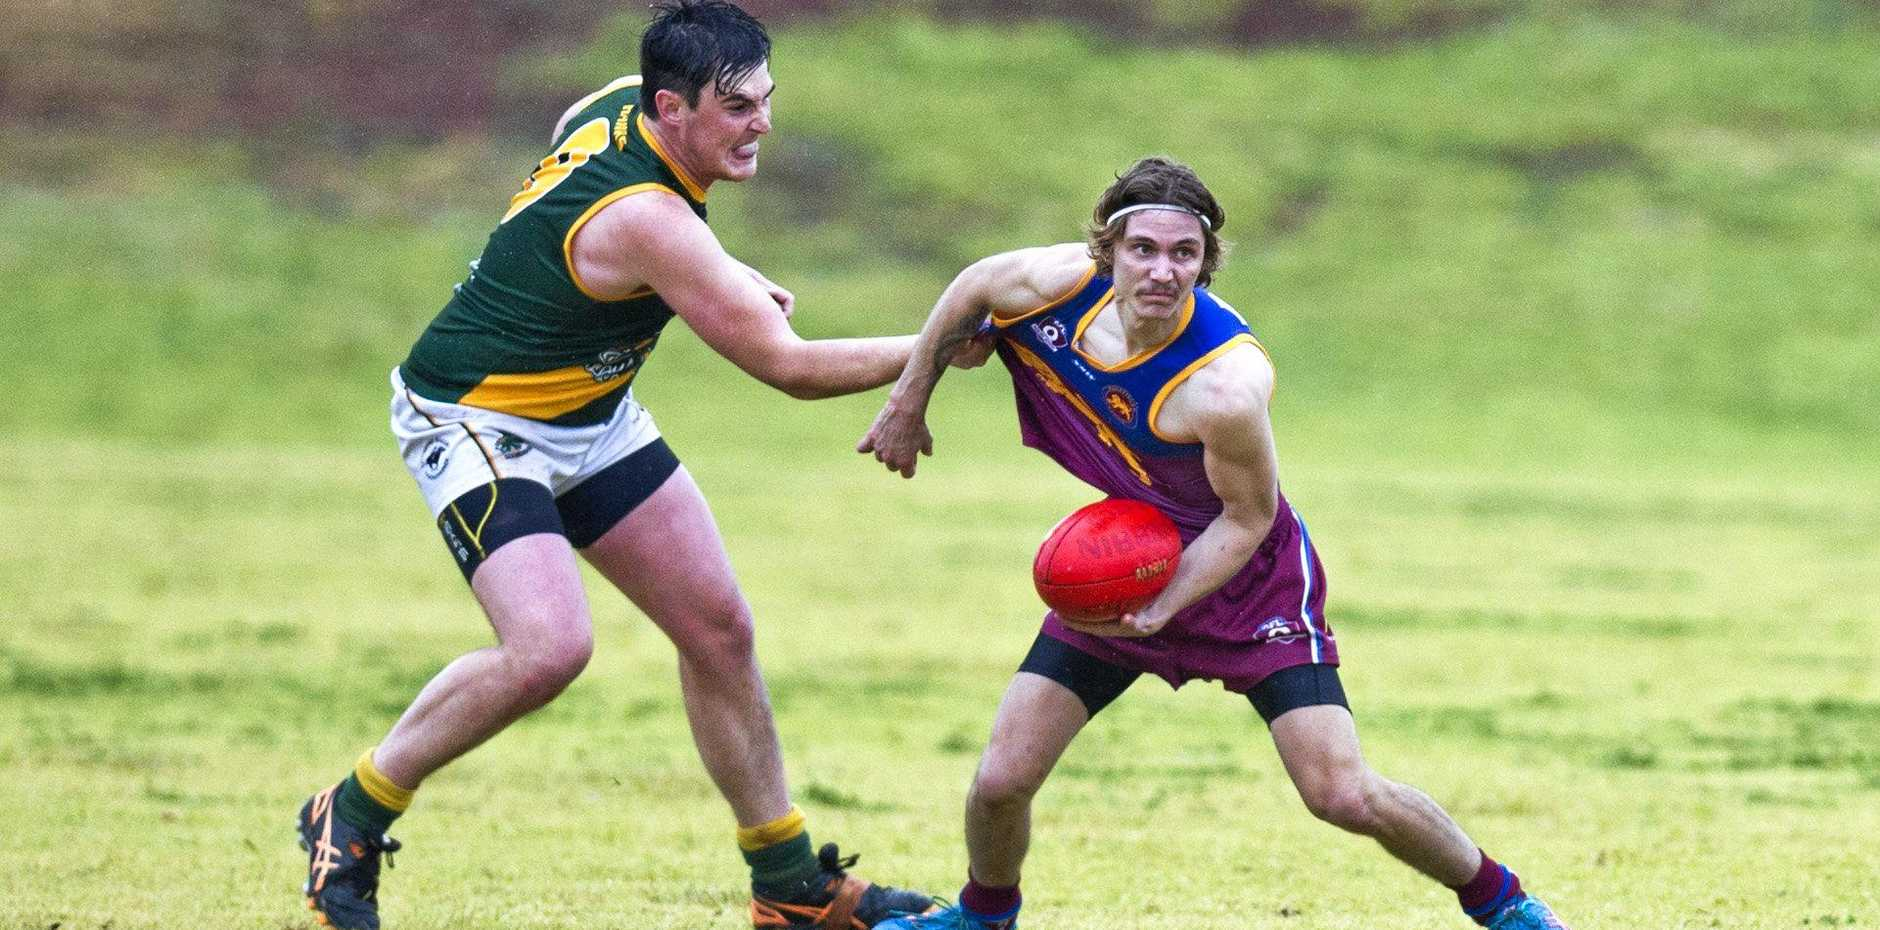 HOLDING ON: Goondiwindi Hawks player Joe Verney refuses to let Highfields' Callais Chicken get out of his grasp.